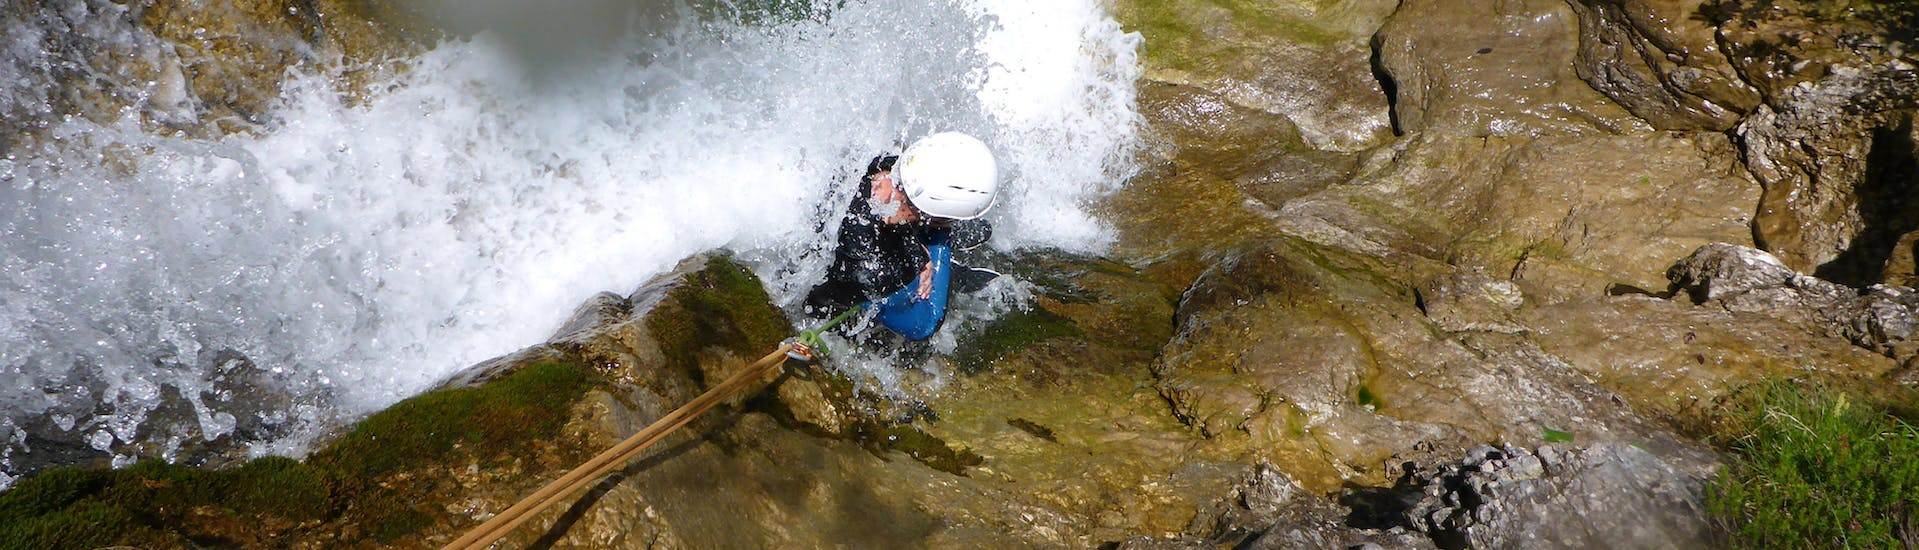 "During Canyoning ""Rocks & Ropes"" for Sportive Beginners with Base Camp, a participant is roping down over a waterfall."